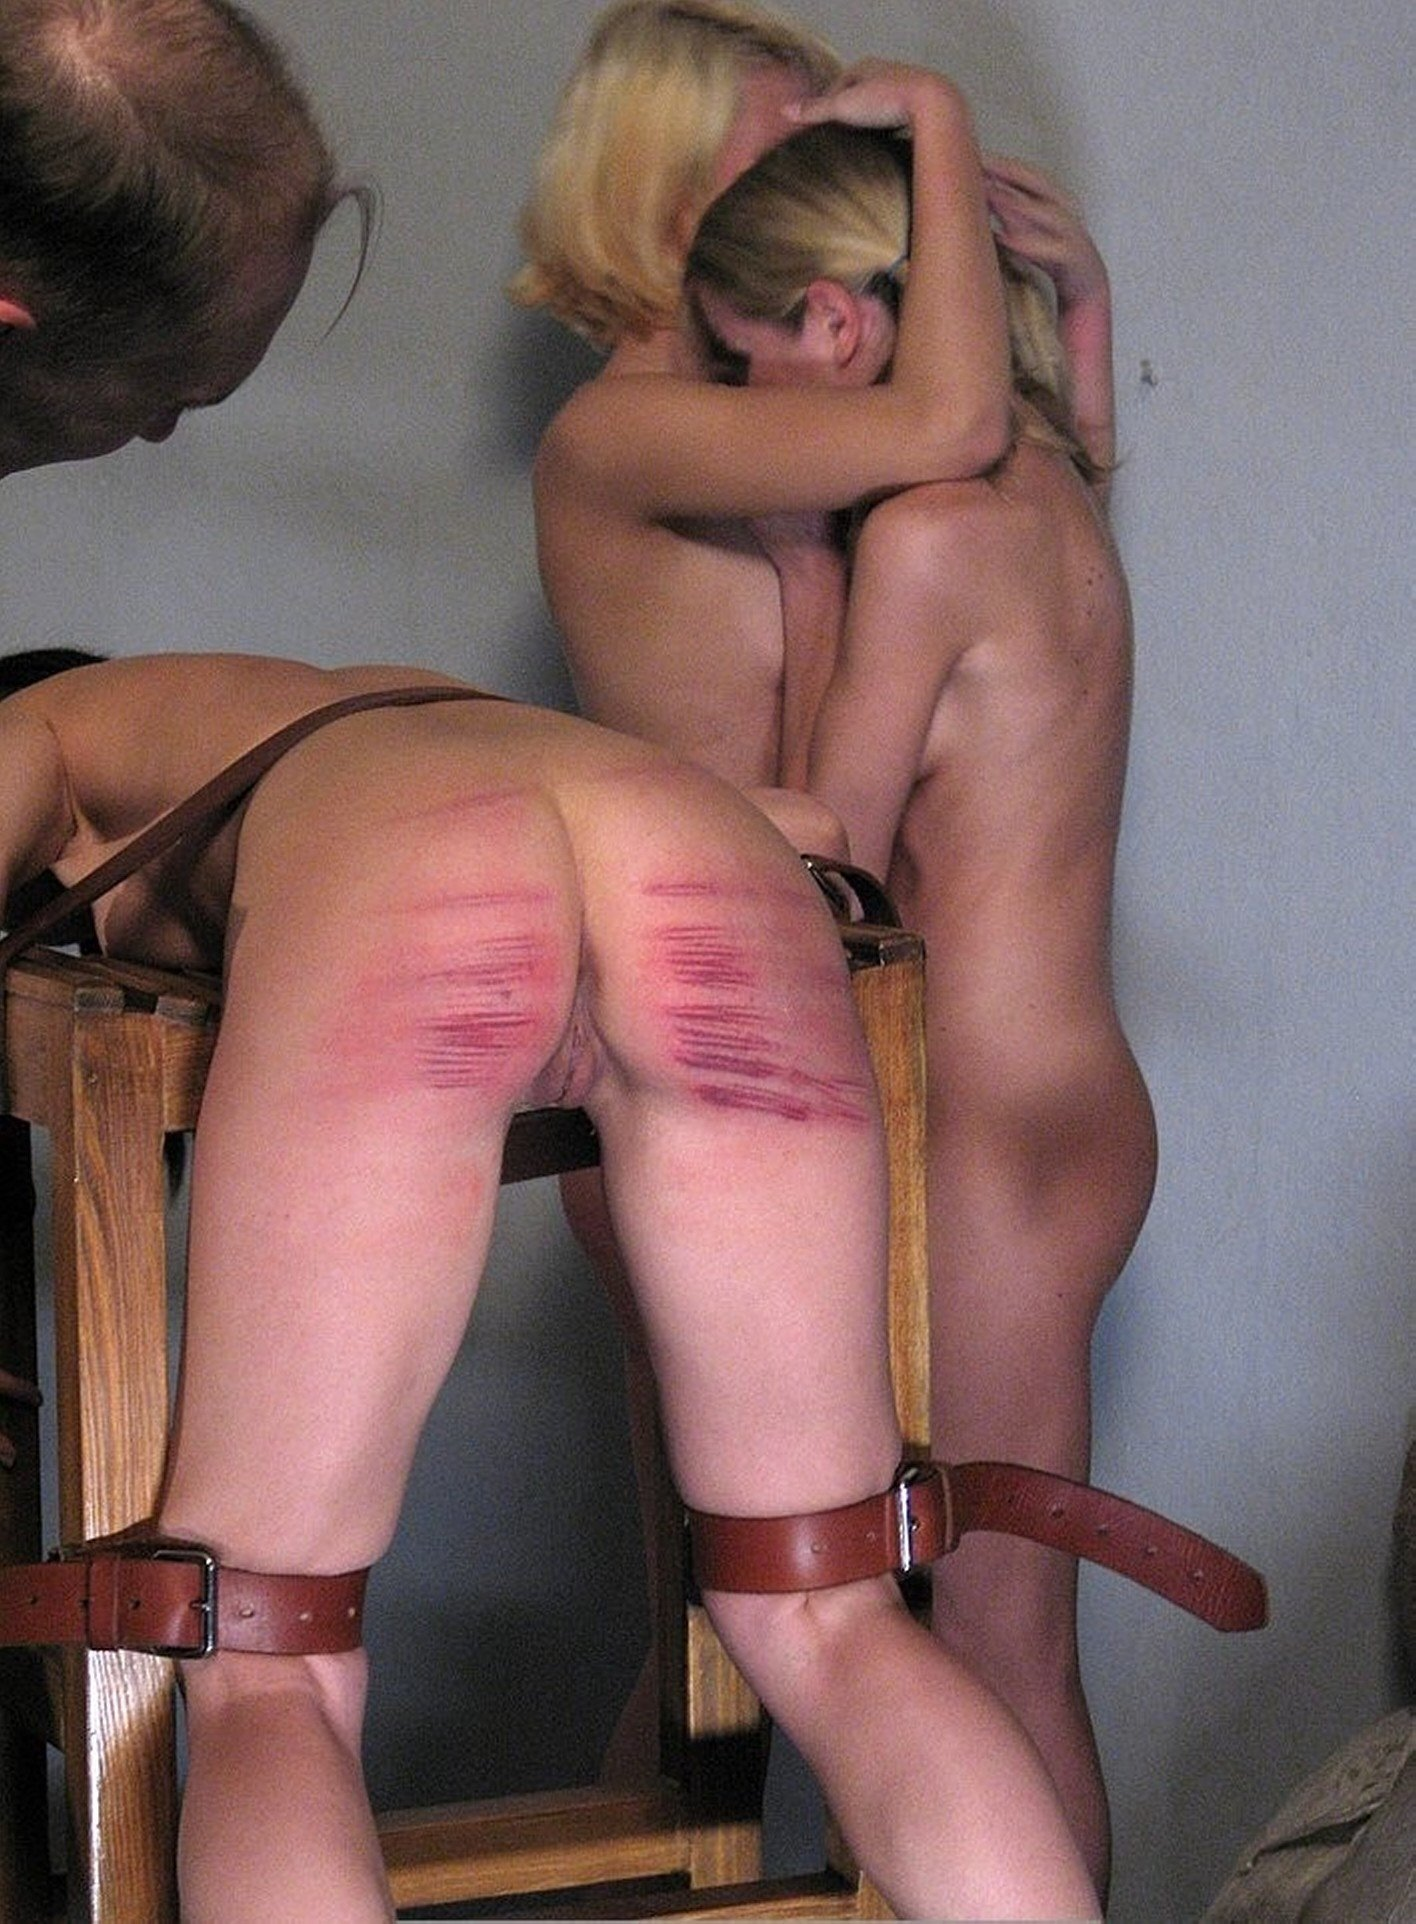 Tickling and spanking